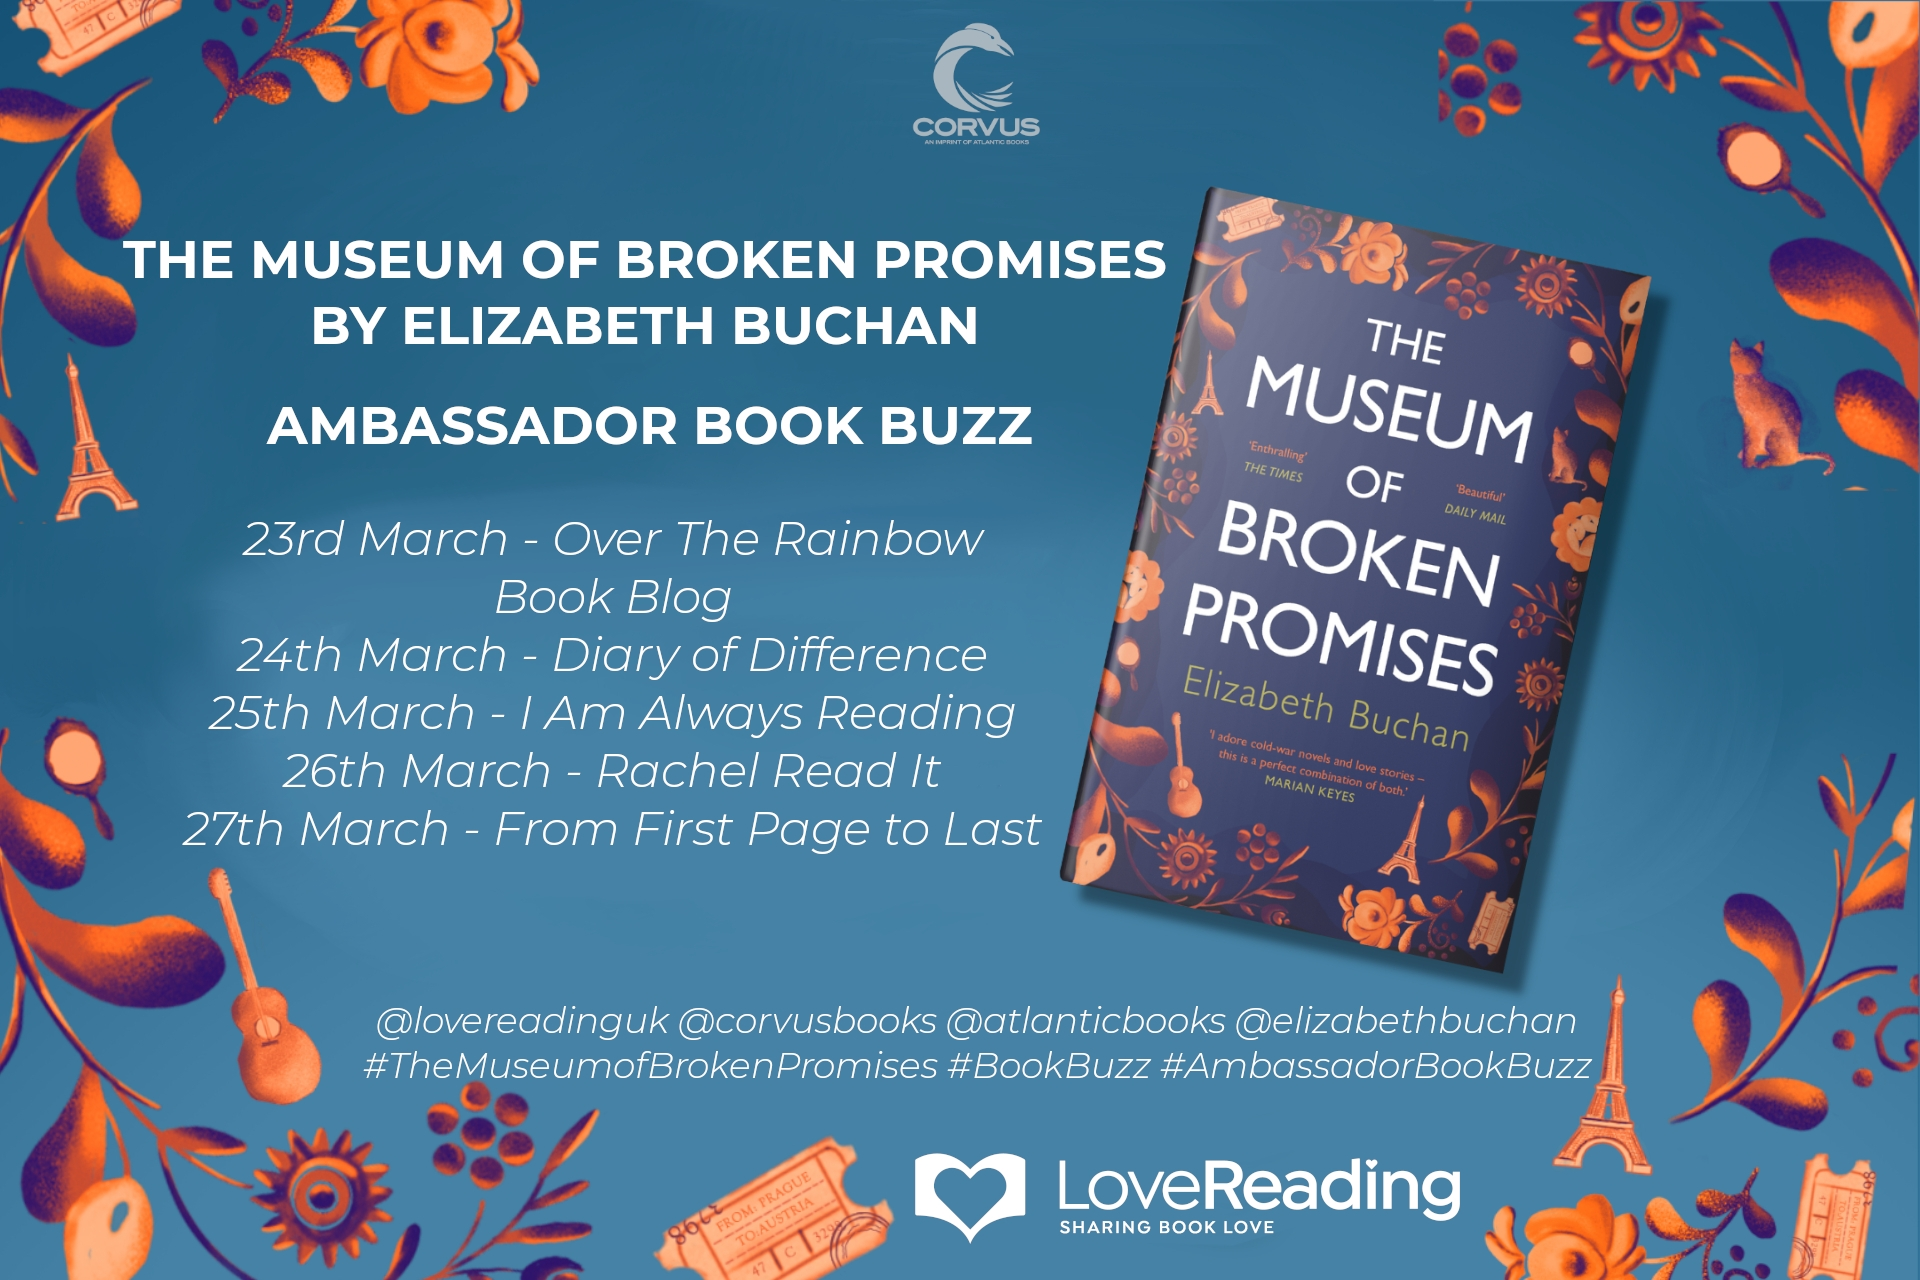 Ambassador Book Buzz: The Museum of Broken Promises by Elizabeth Buchan